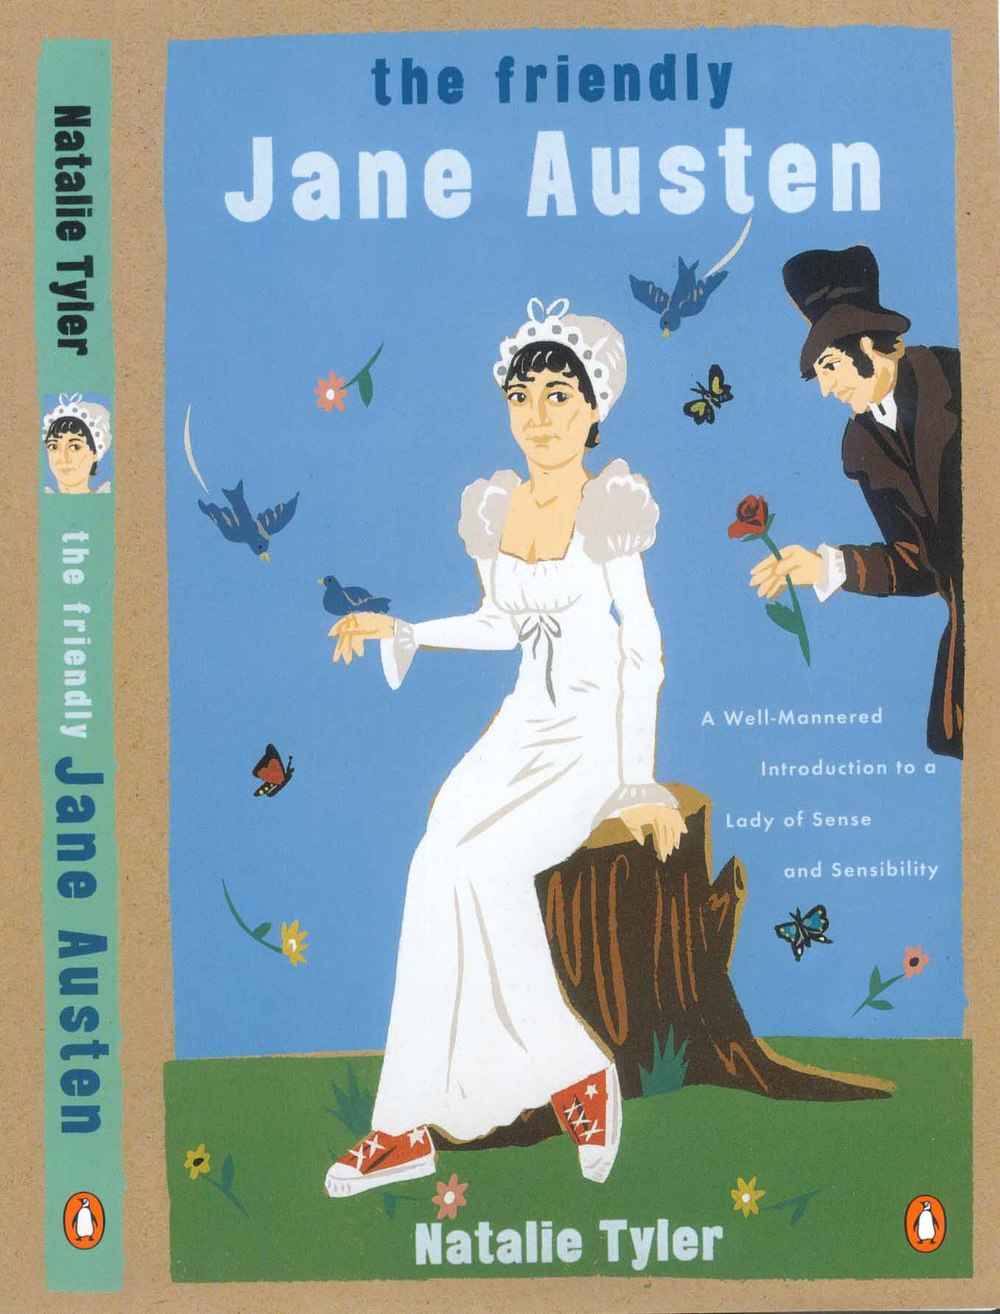 jane austen book cover.jpg